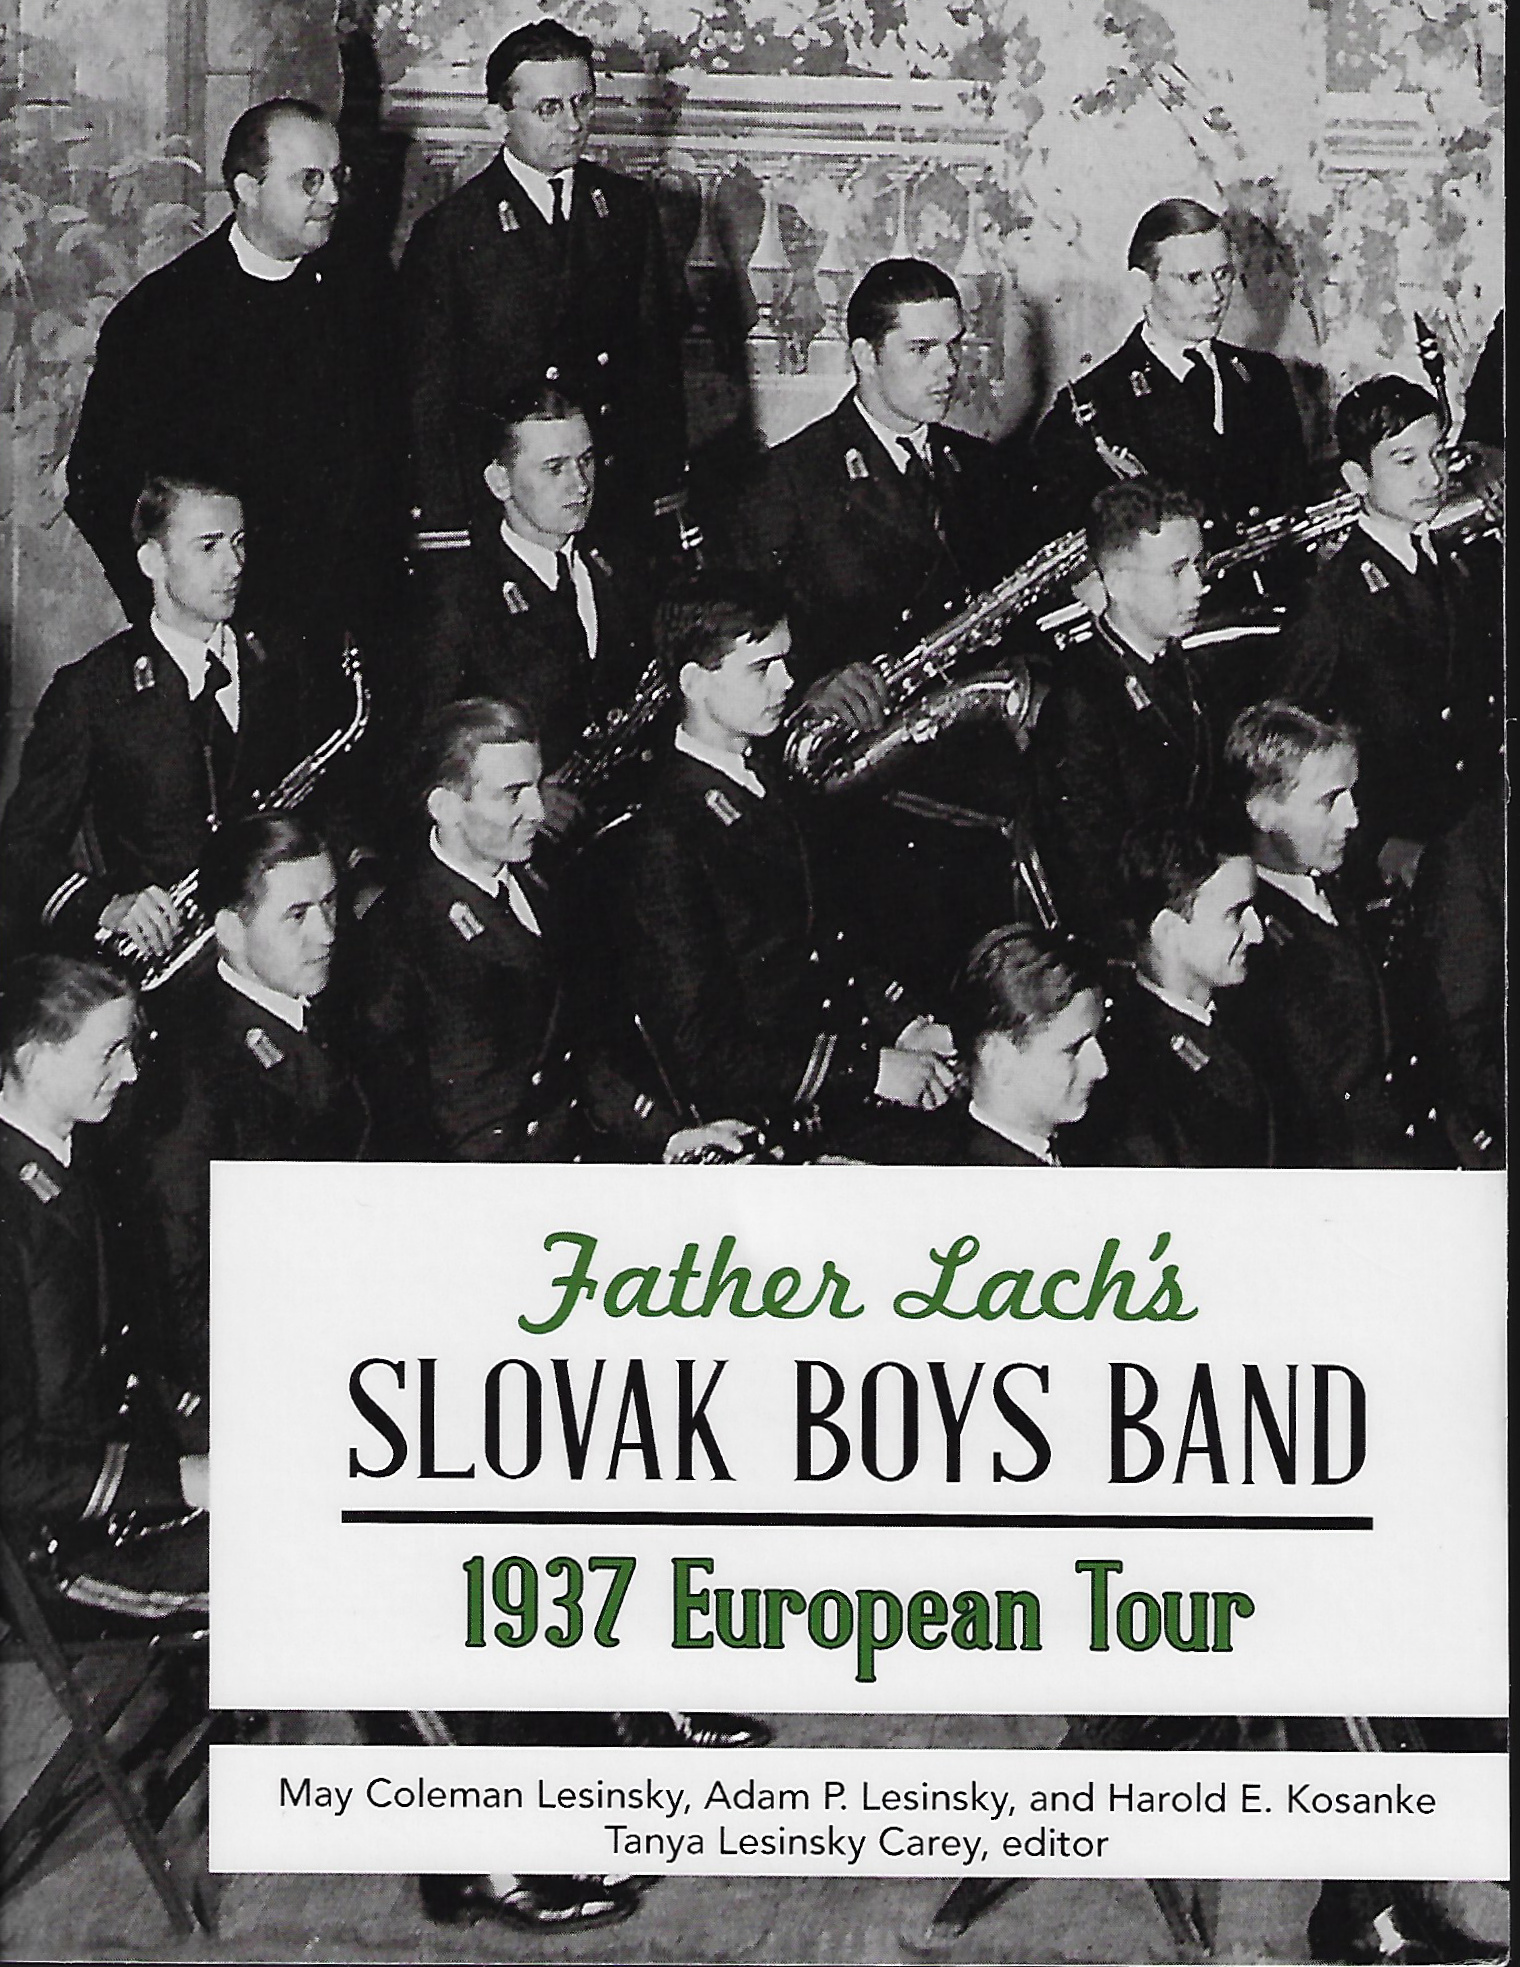 Father Lach's Slovak Boys Band 1937 European Tour